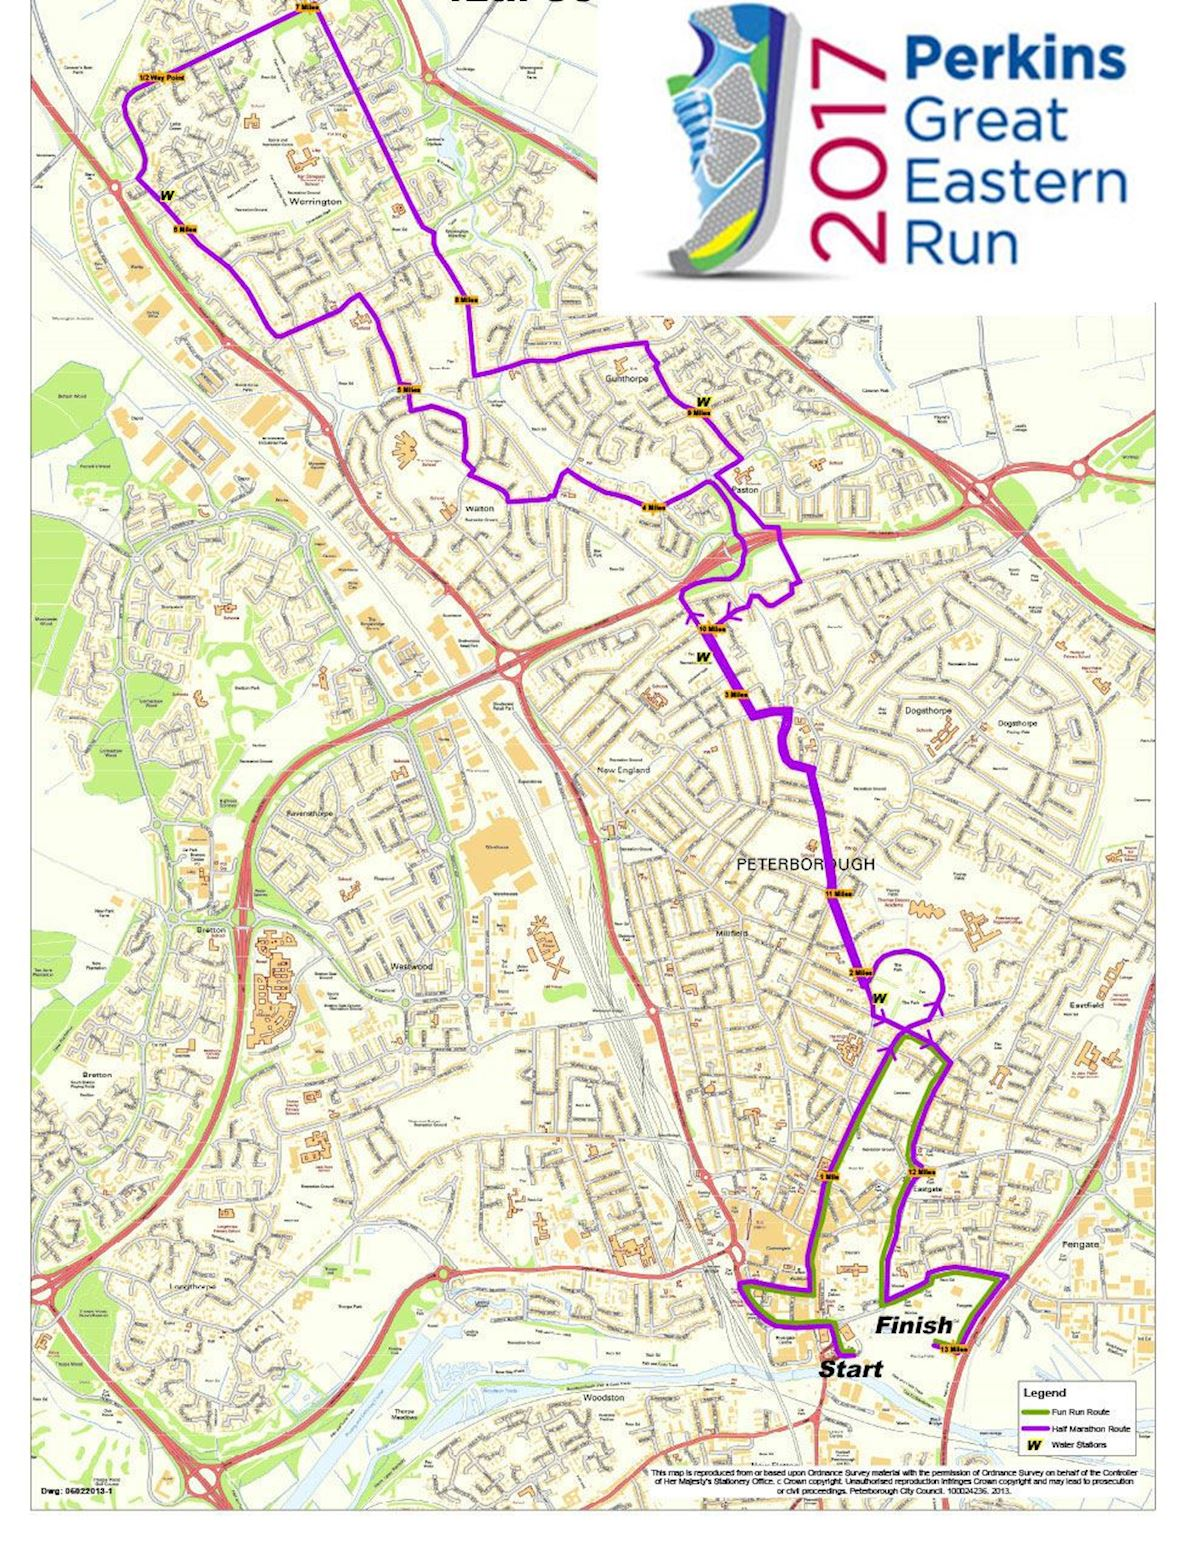 Perkins Great Eastern Run MAPA DEL RECORRIDO DE